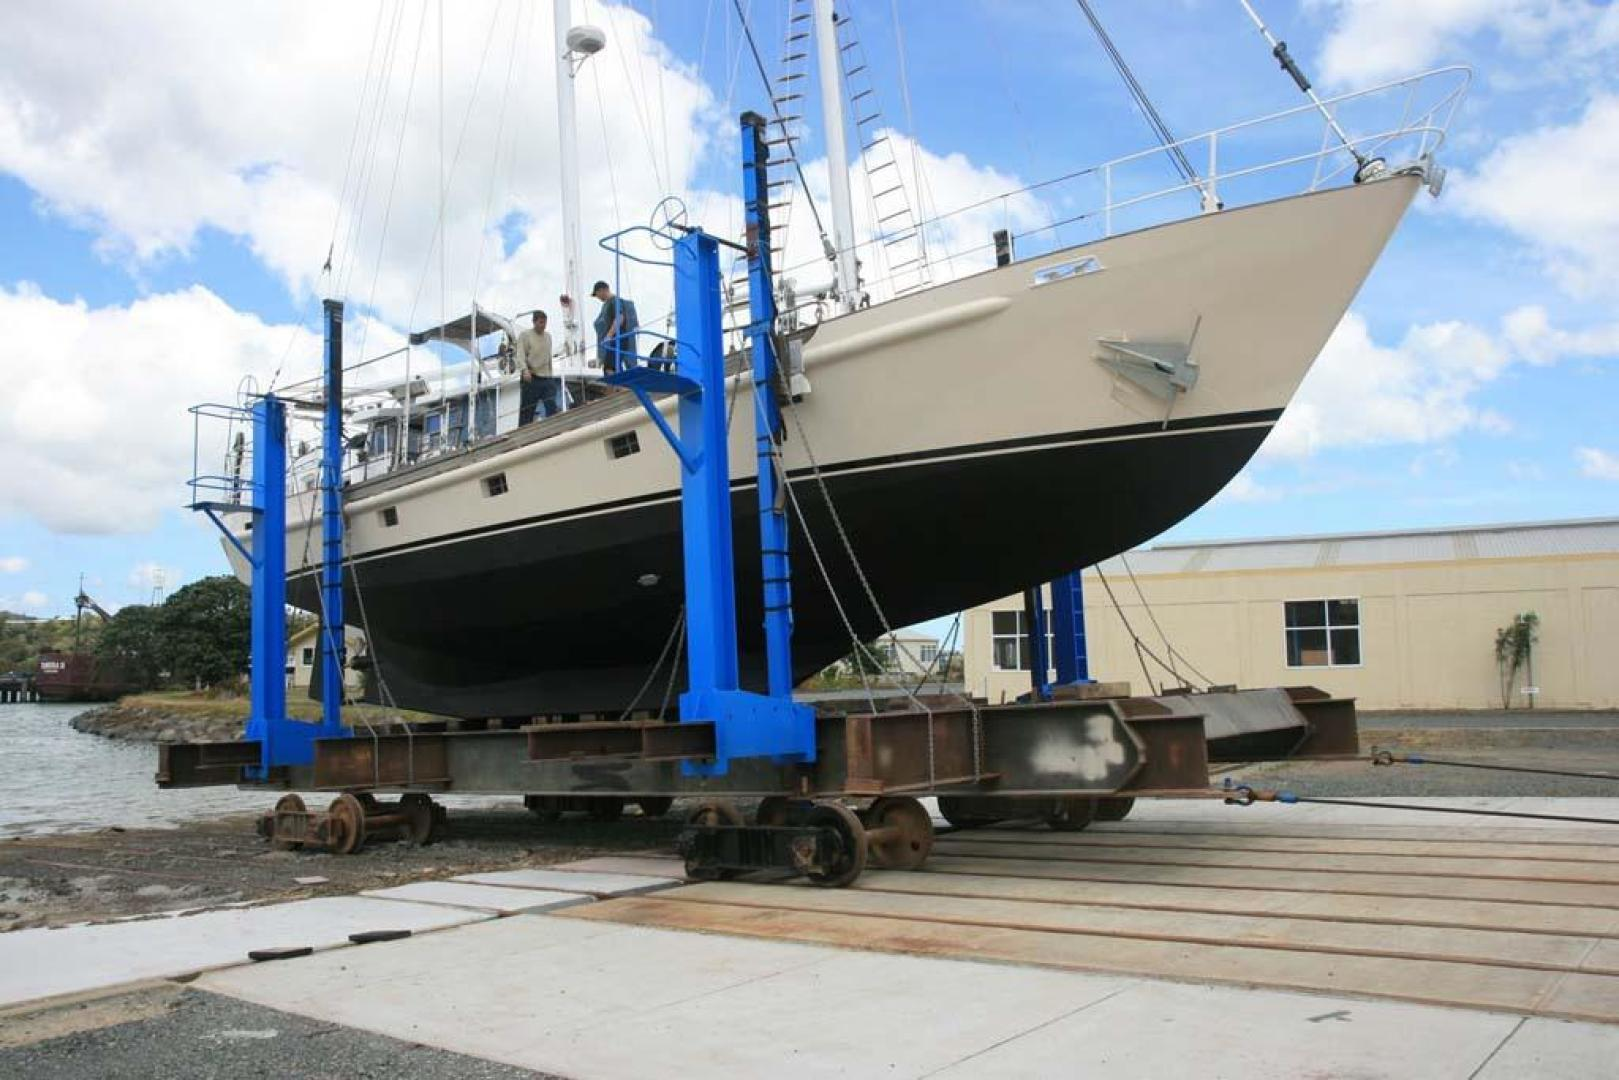 Custom-John Walsh Expedition Schooner 1988-Quest Ft. Lauderdale-Florida-United States-On The Hard-924101 | Thumbnail